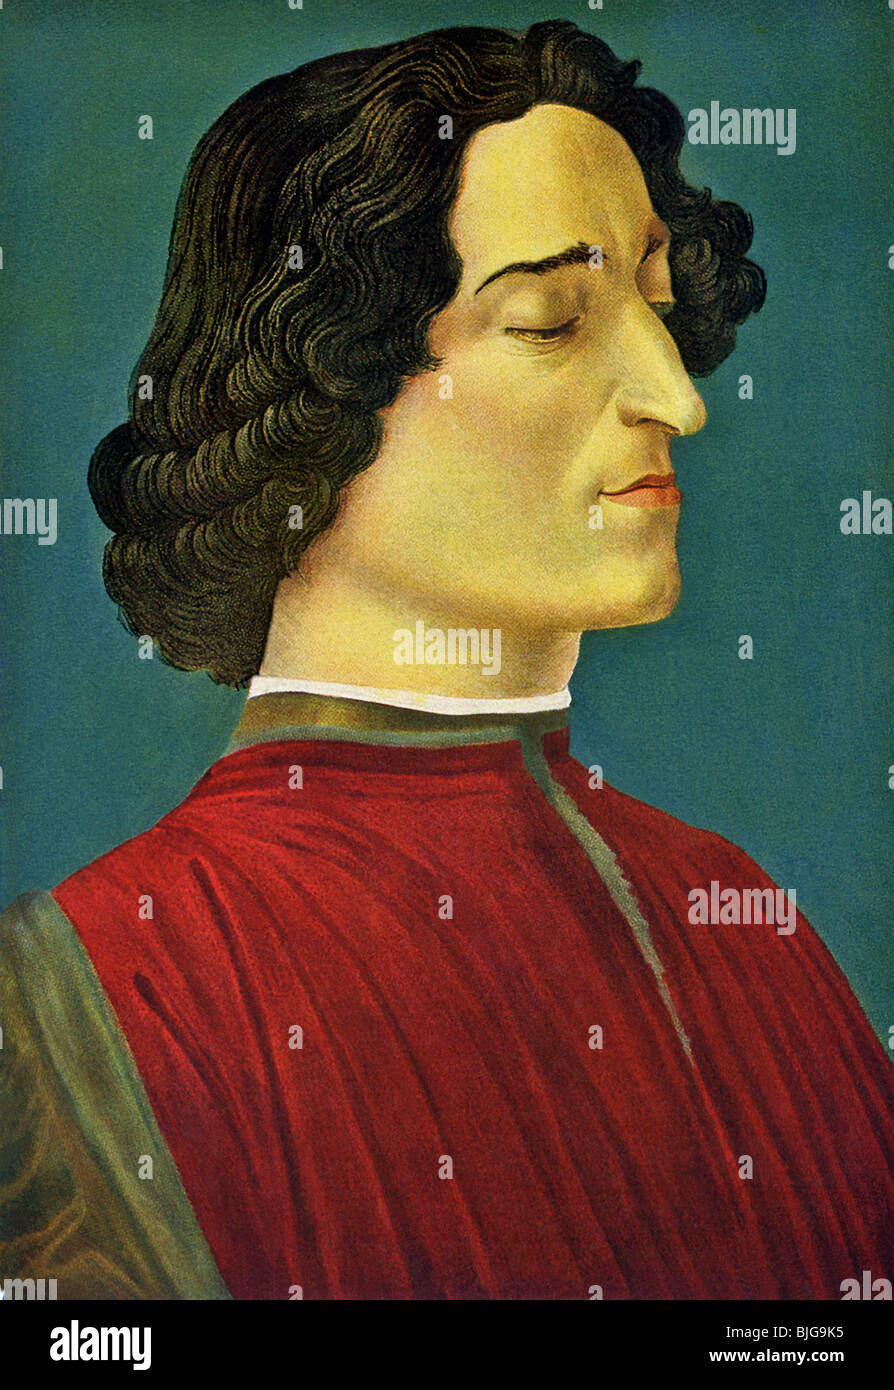 This portrait of Giuliano de Medici was done by Sandro Botticelli (c. 1444-1510), Florentine artist of the Renaissance. - Stock Image